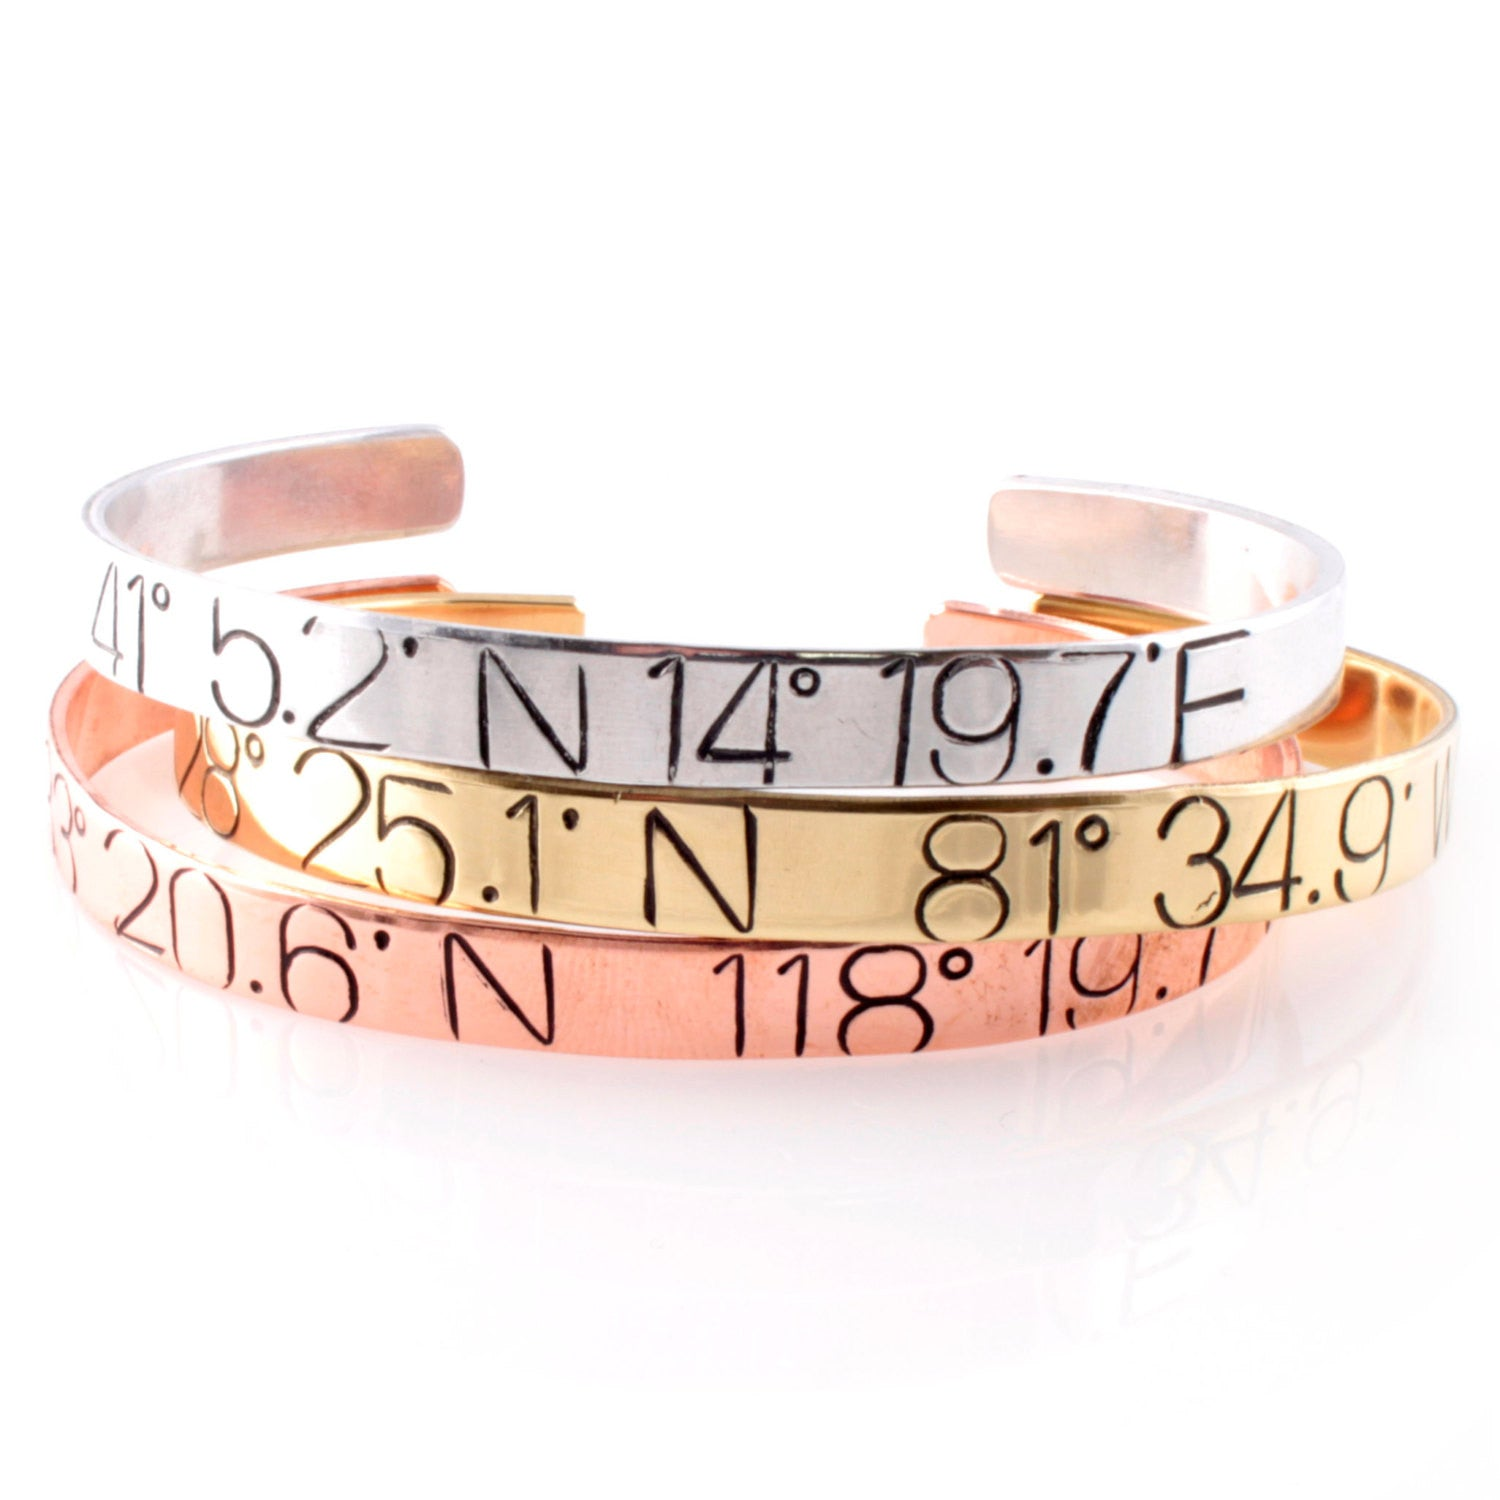 anchor of stamp design pin hammered with lat ship gps bracelet longitude and sides long coordinates